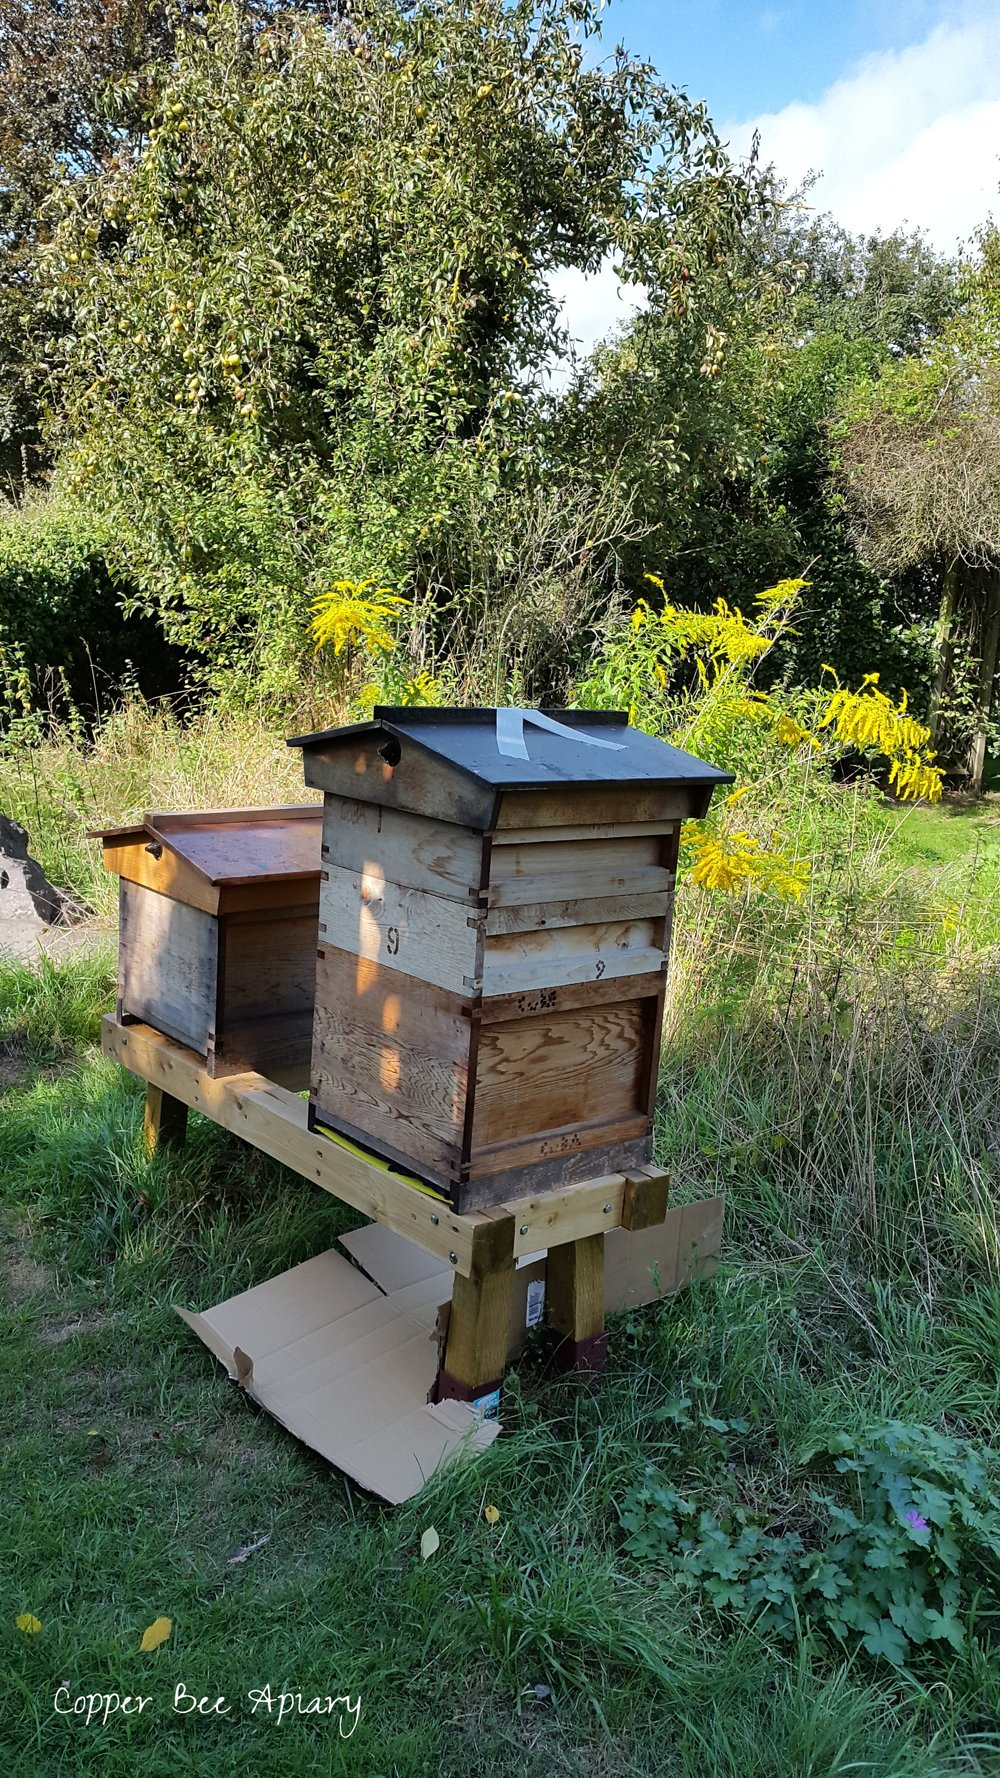 Mab (left) and Titania (right) on their final day before treatment/destruction. The floorboard is inserted in the Titania hive, with rags on it to absorb petrol. A sheet of cardboard is underneath to catch leaks. Bees come and go at the time of the photograph, but at dusk the Titania hive was taped closed.